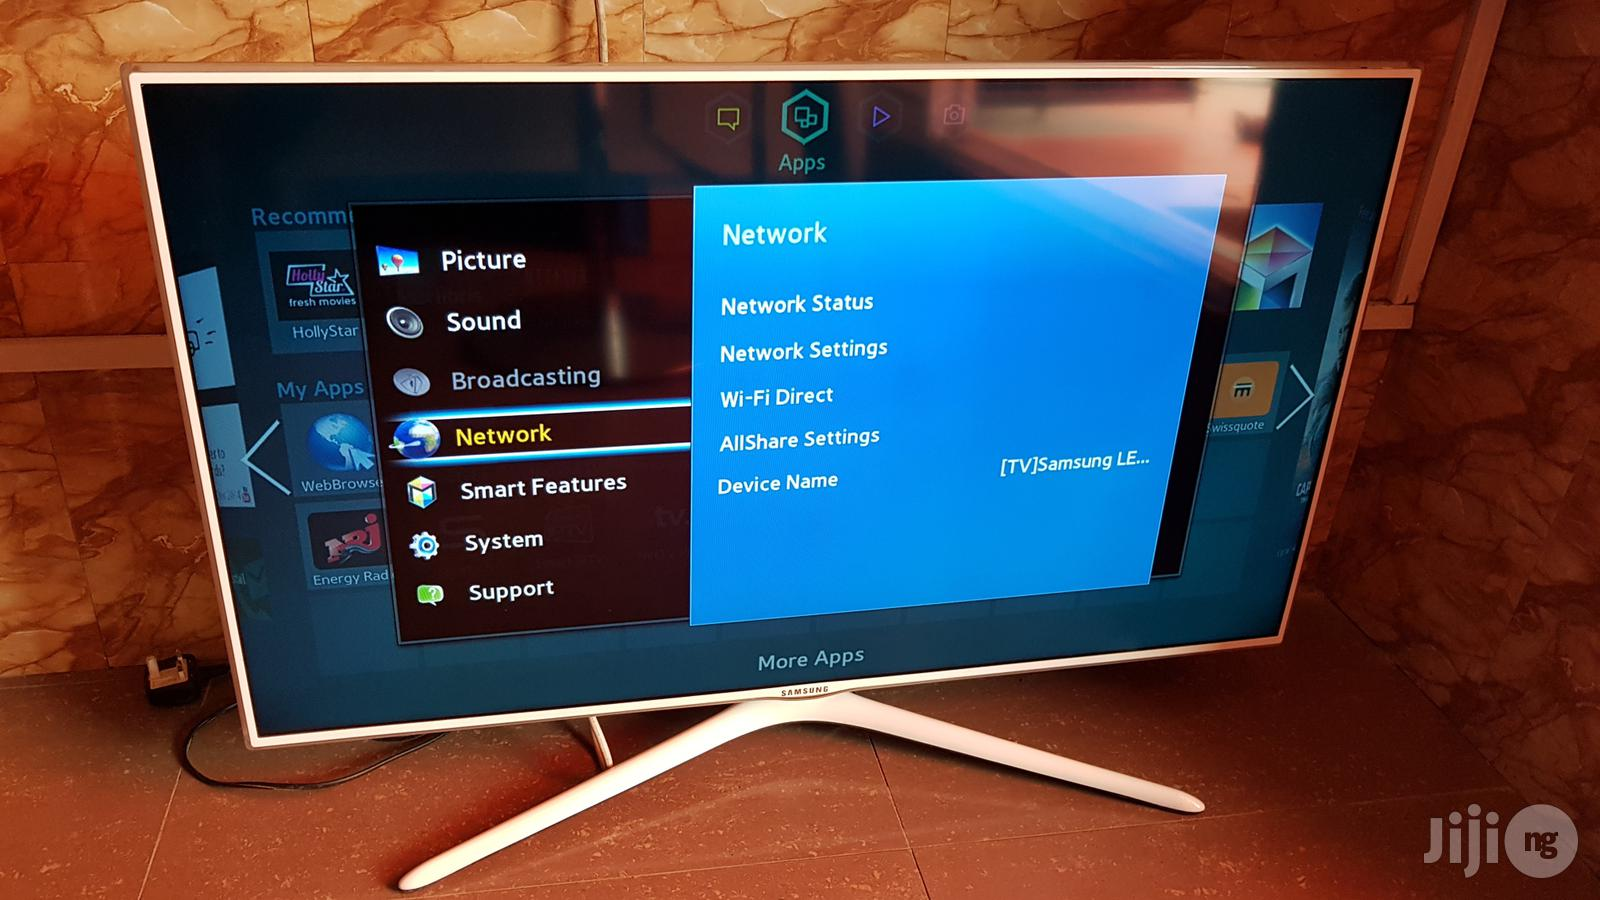 Samsung Smart Full HD Led 3D TV 40 Inches | TV & DVD Equipment for sale in Ojo, Lagos State, Nigeria